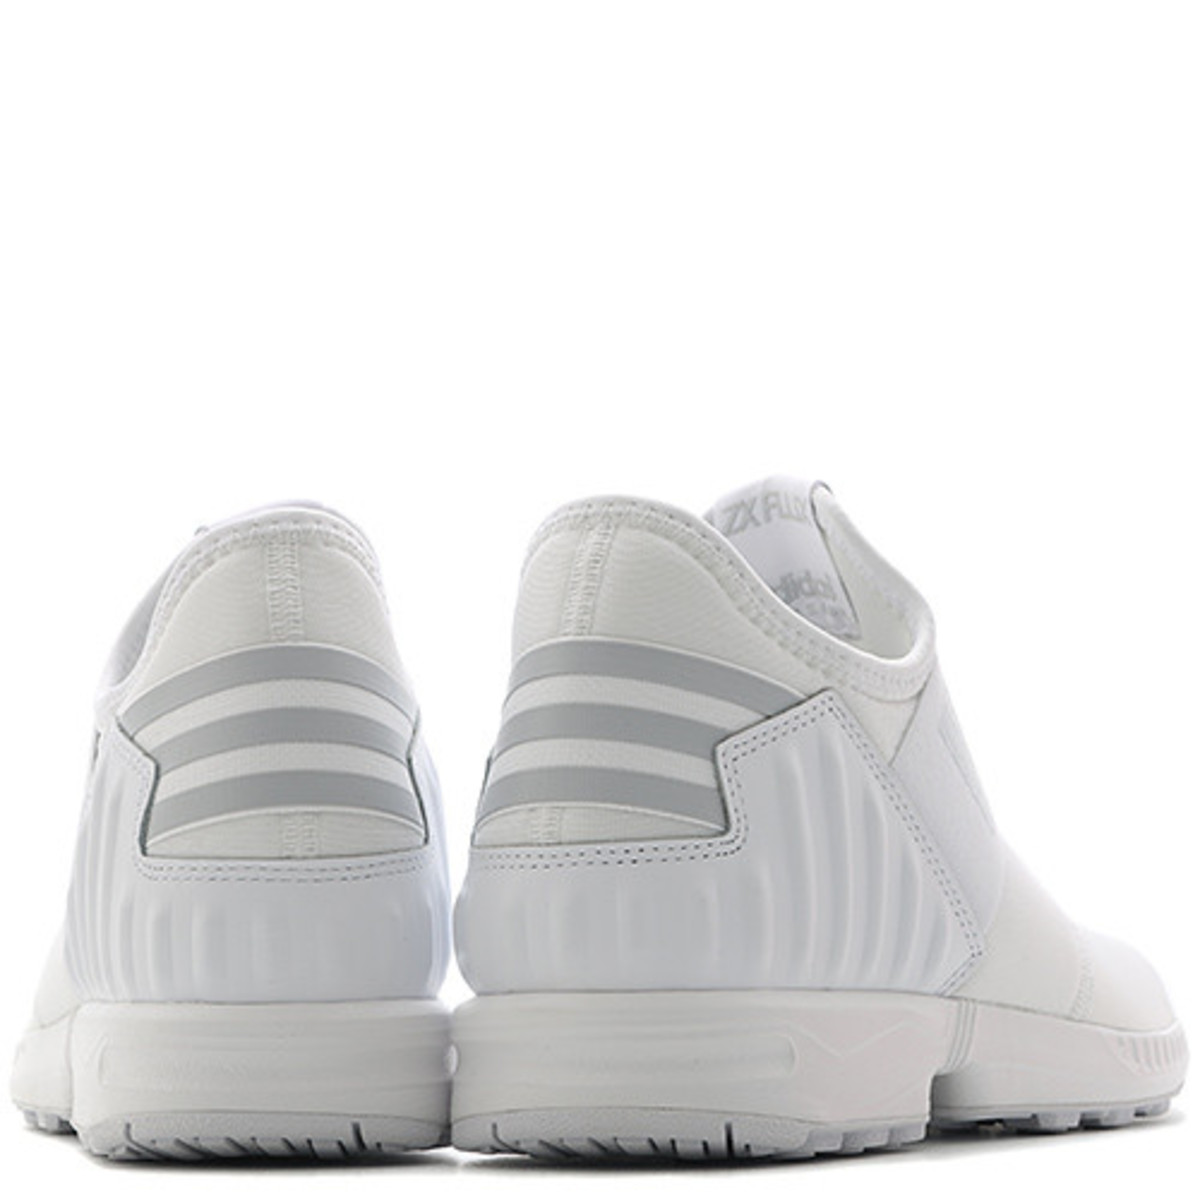 29a204801 ADIDAS ORIGINALS BY WHITE MOUNTAINEERING ZX FLUX PLUS - WHITE ...